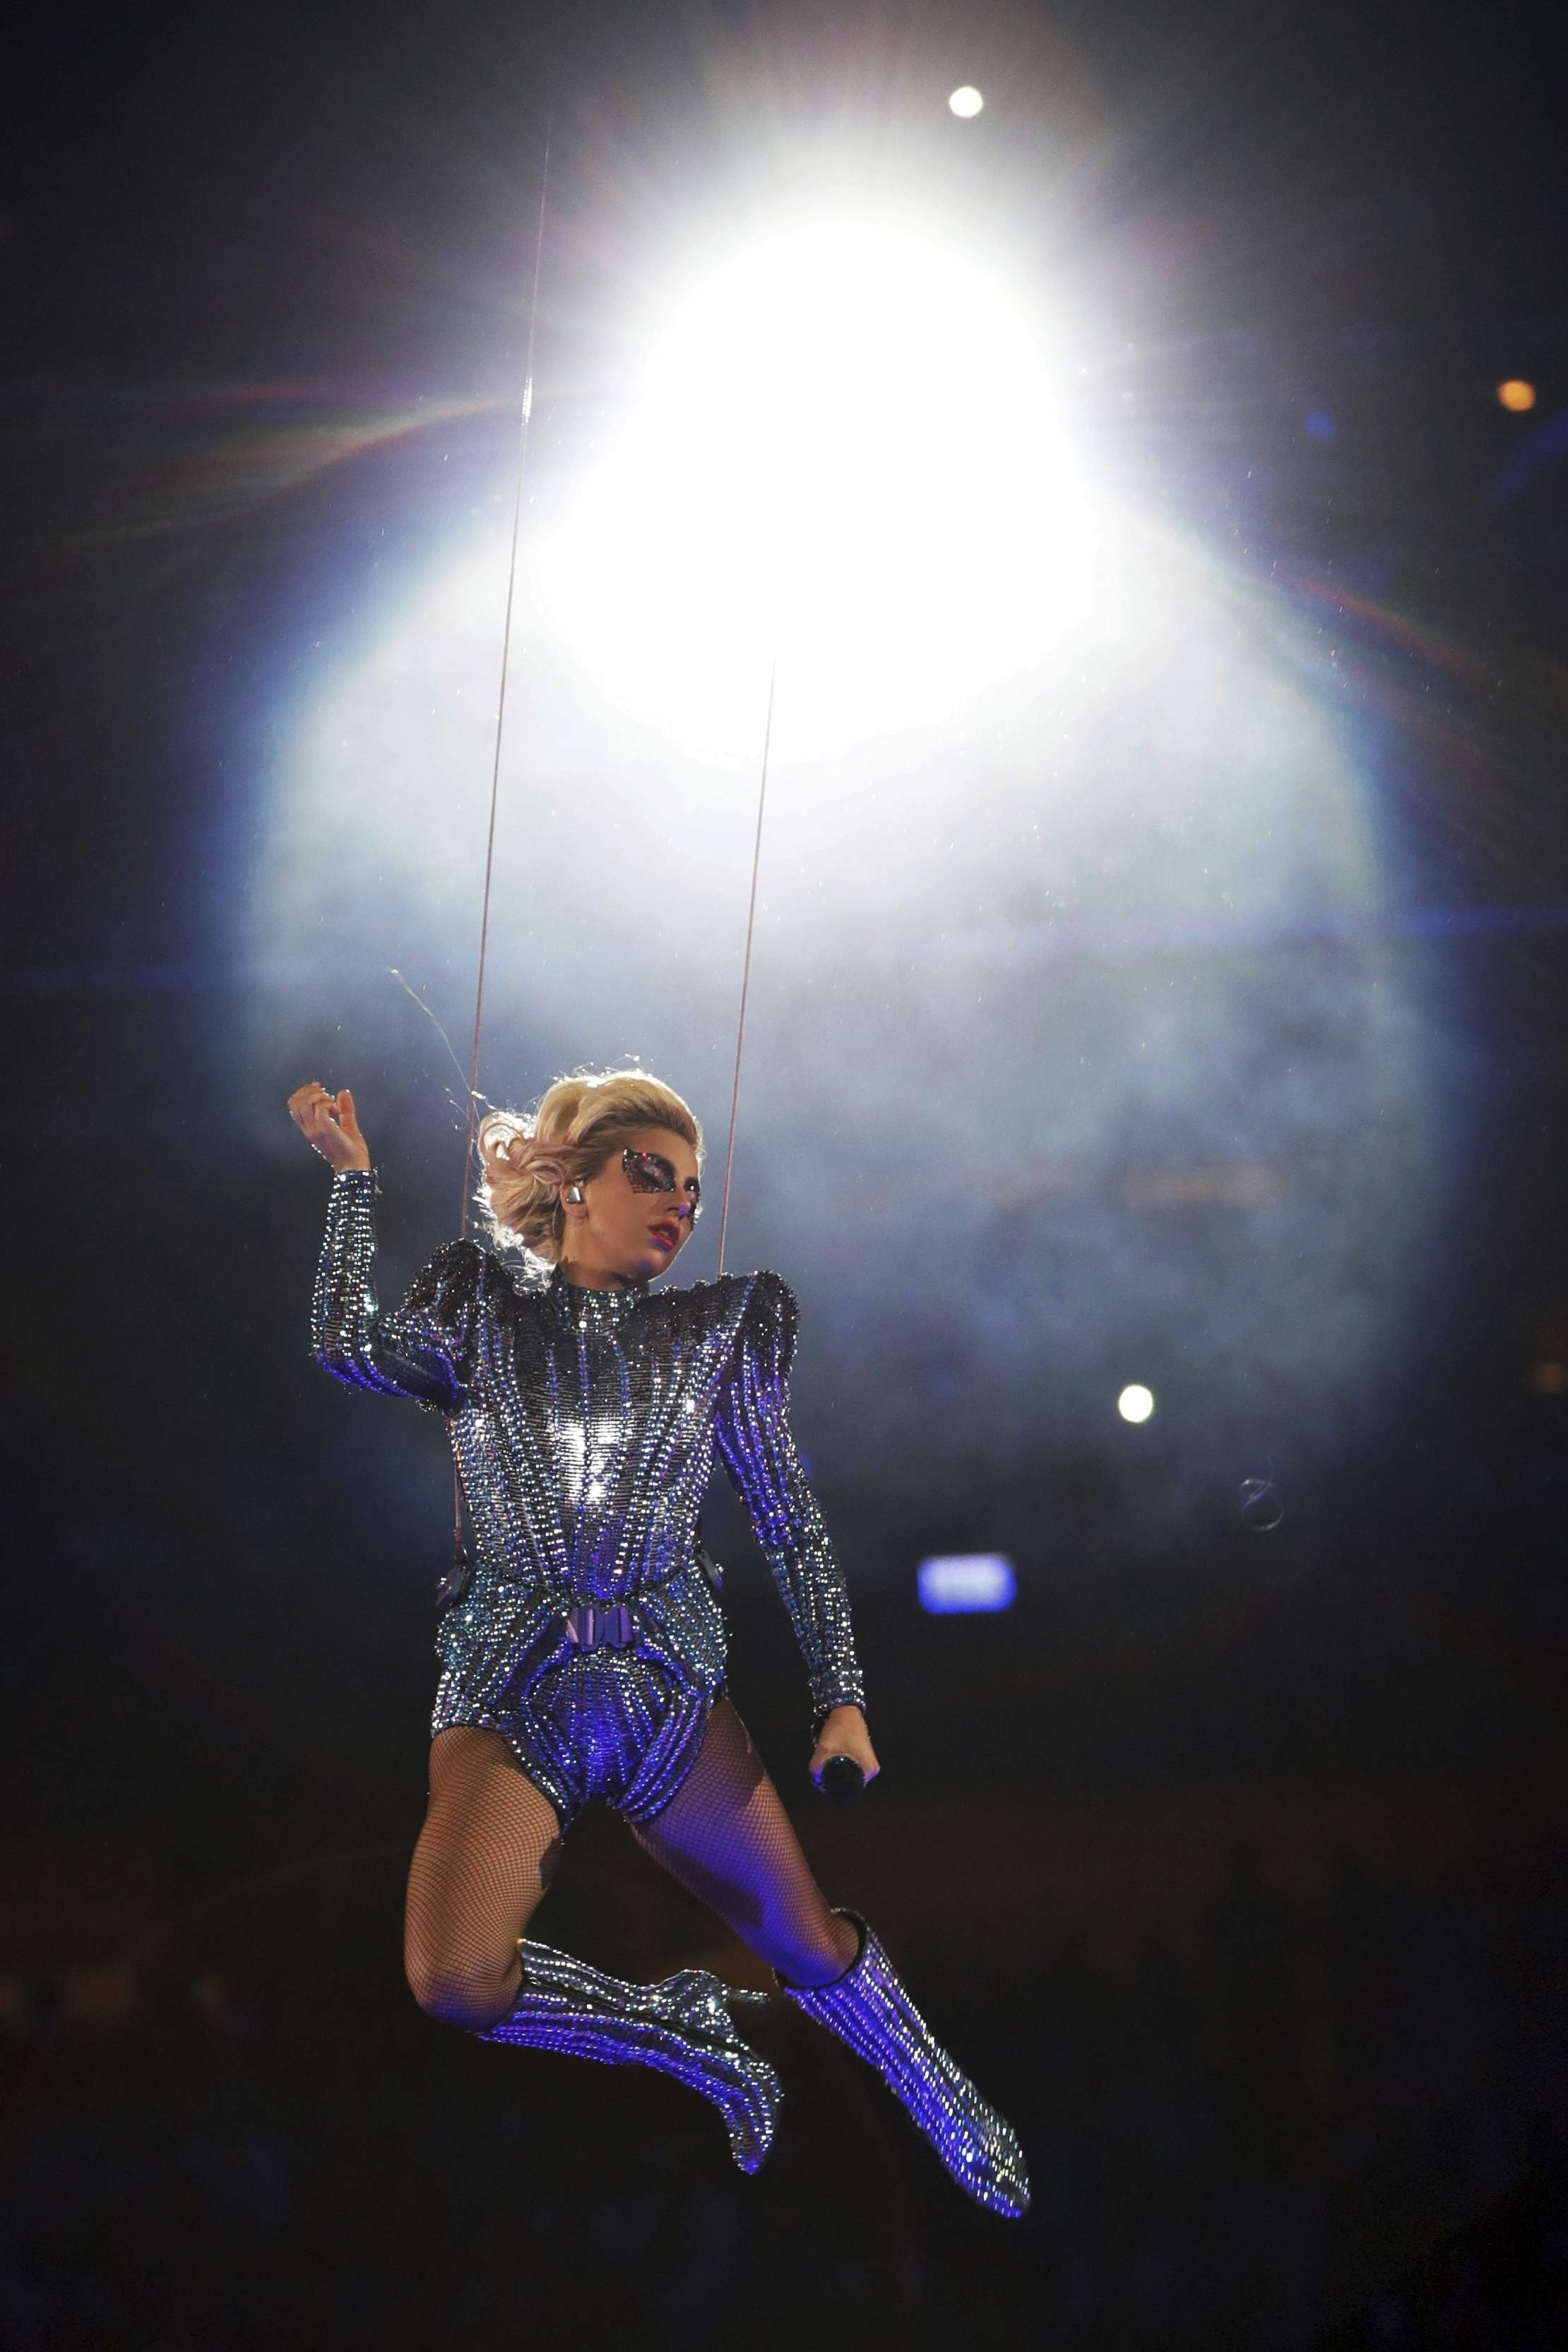 Singer Lady Gaga performs during the halftime show of Super Bowl 51 Sunday, Feb. 5, 2017, in Houston. THE ASSOCIATED PRESS